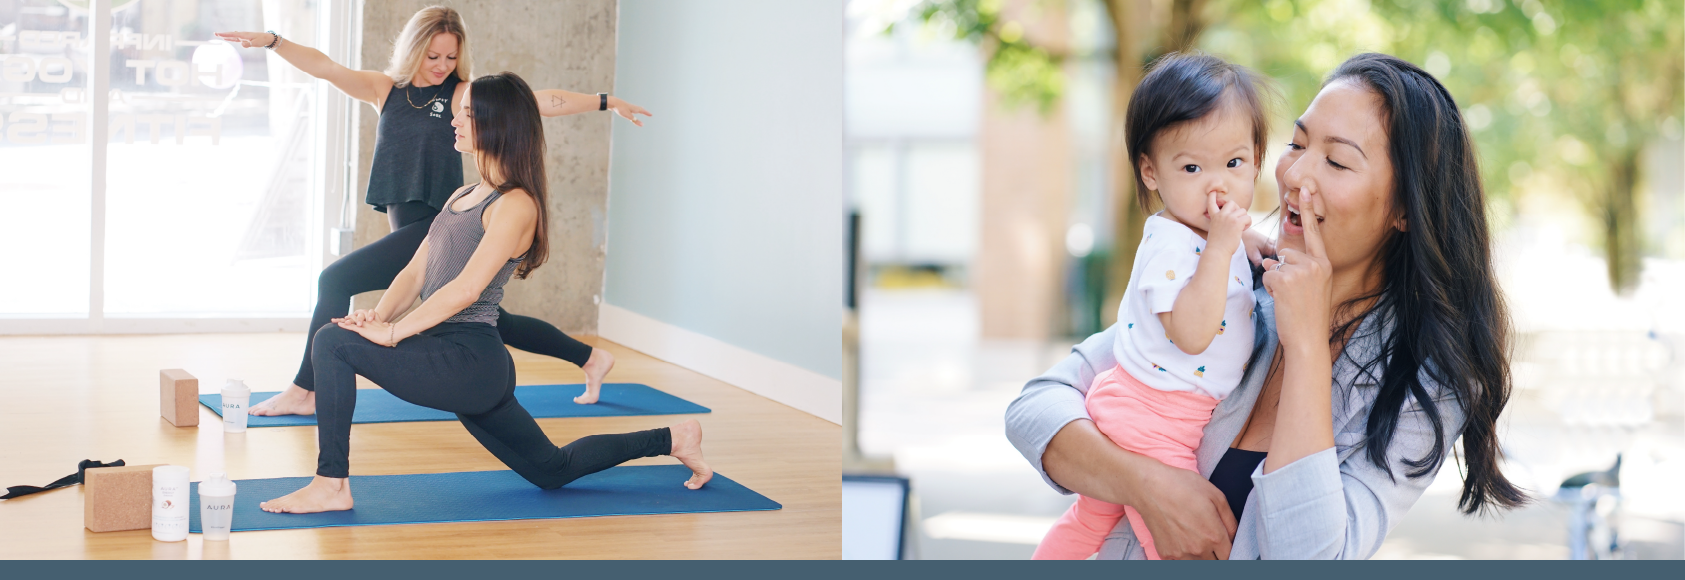 two images, one of women doing warmup stretches and two, a mom playing with her young daughter